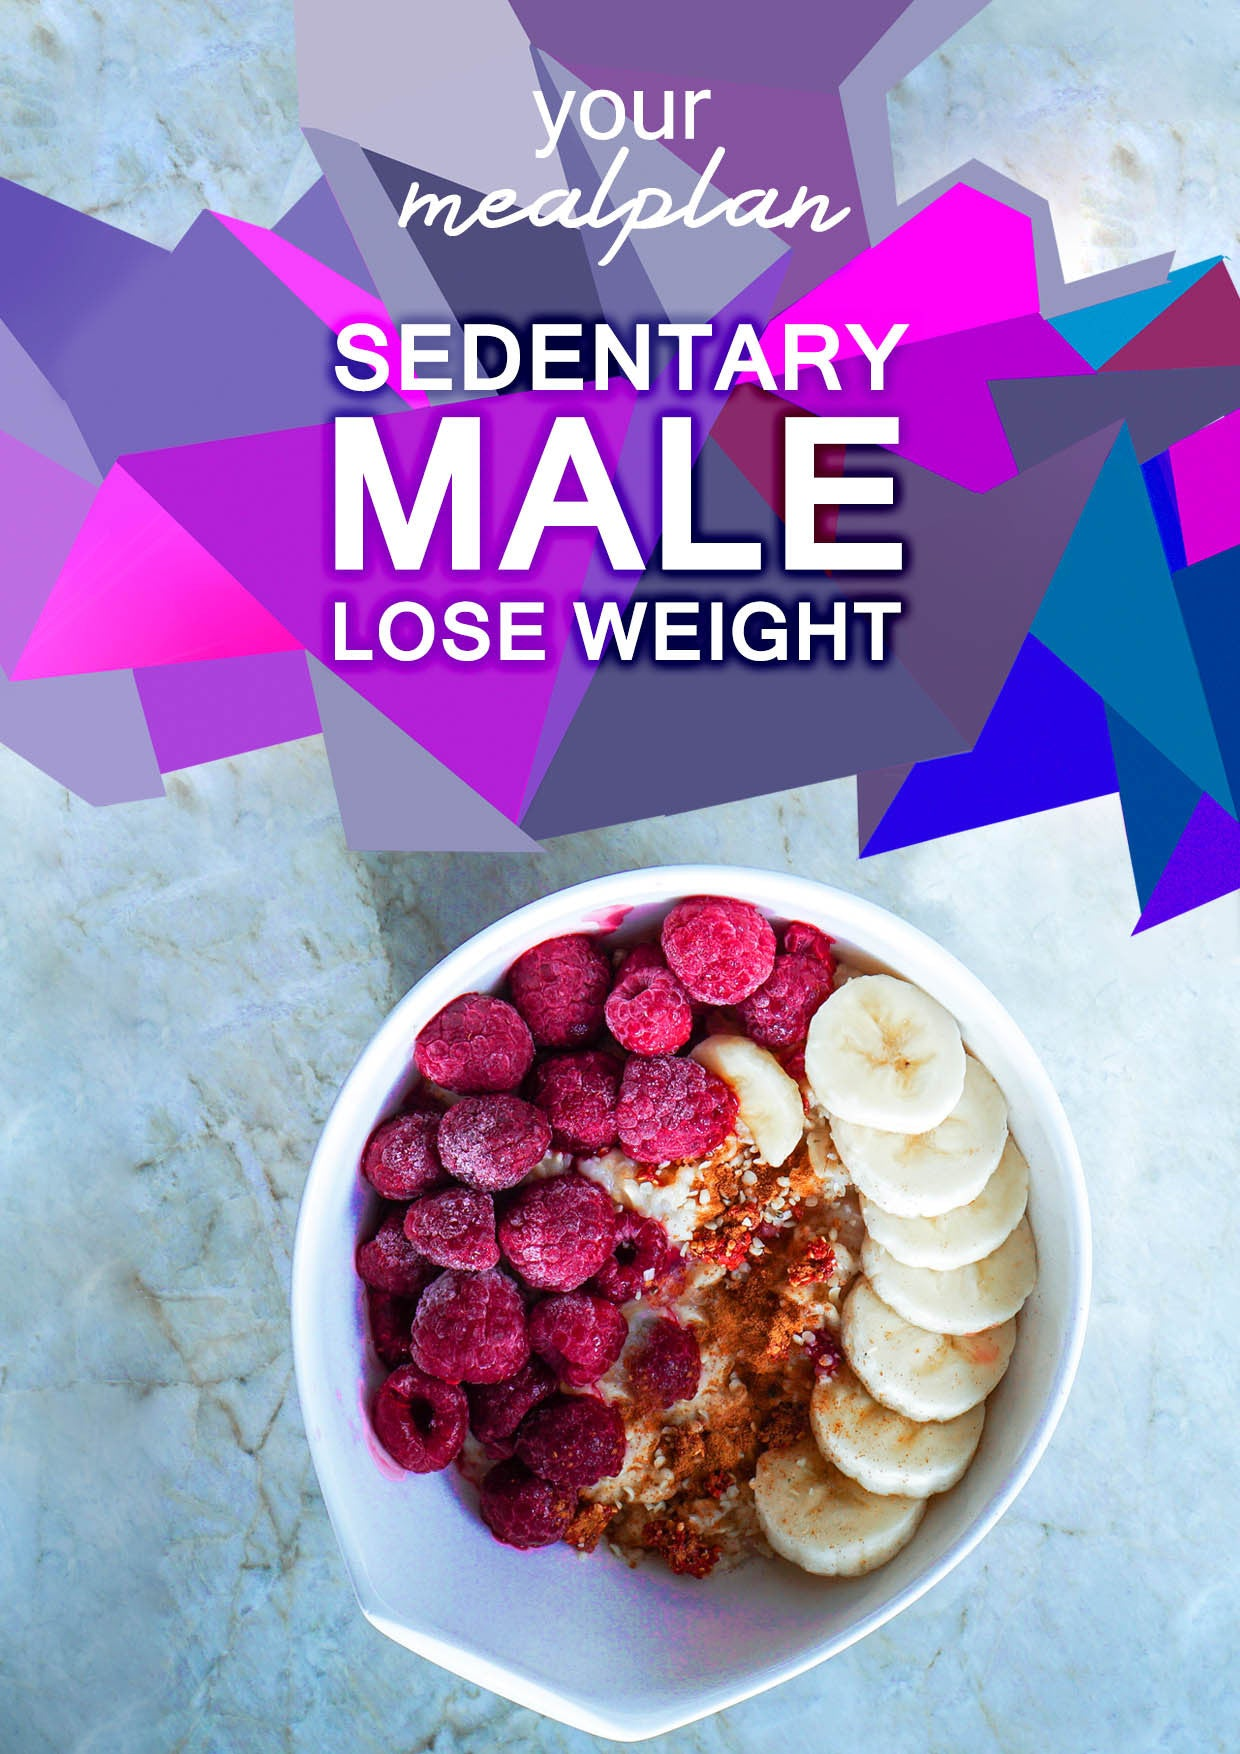 Sedentary Male - Lose Weight